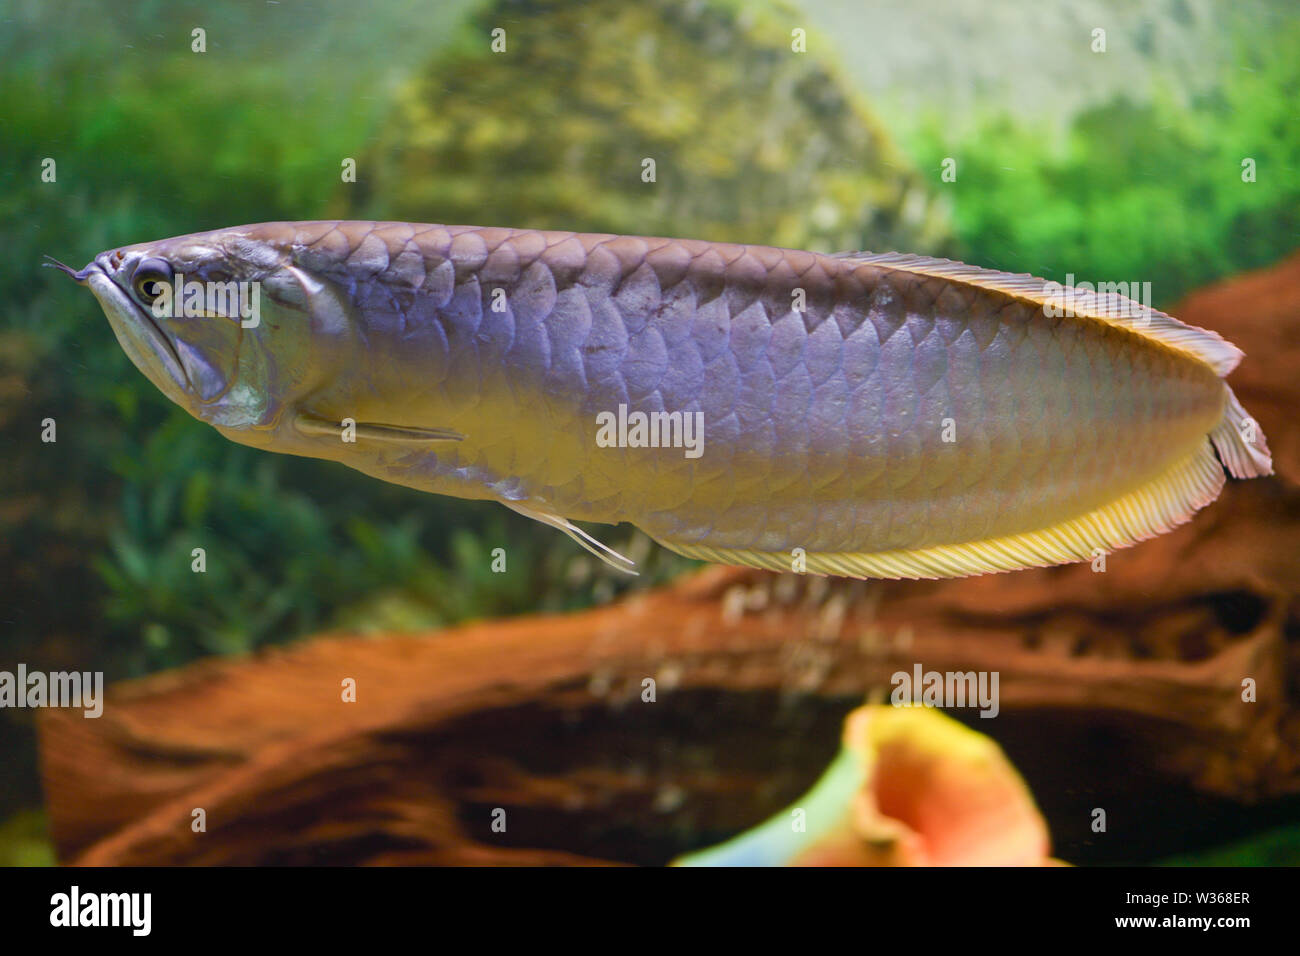 Big silver Arovana fish swims alone in a tank. Horizontal photography Stock Photo